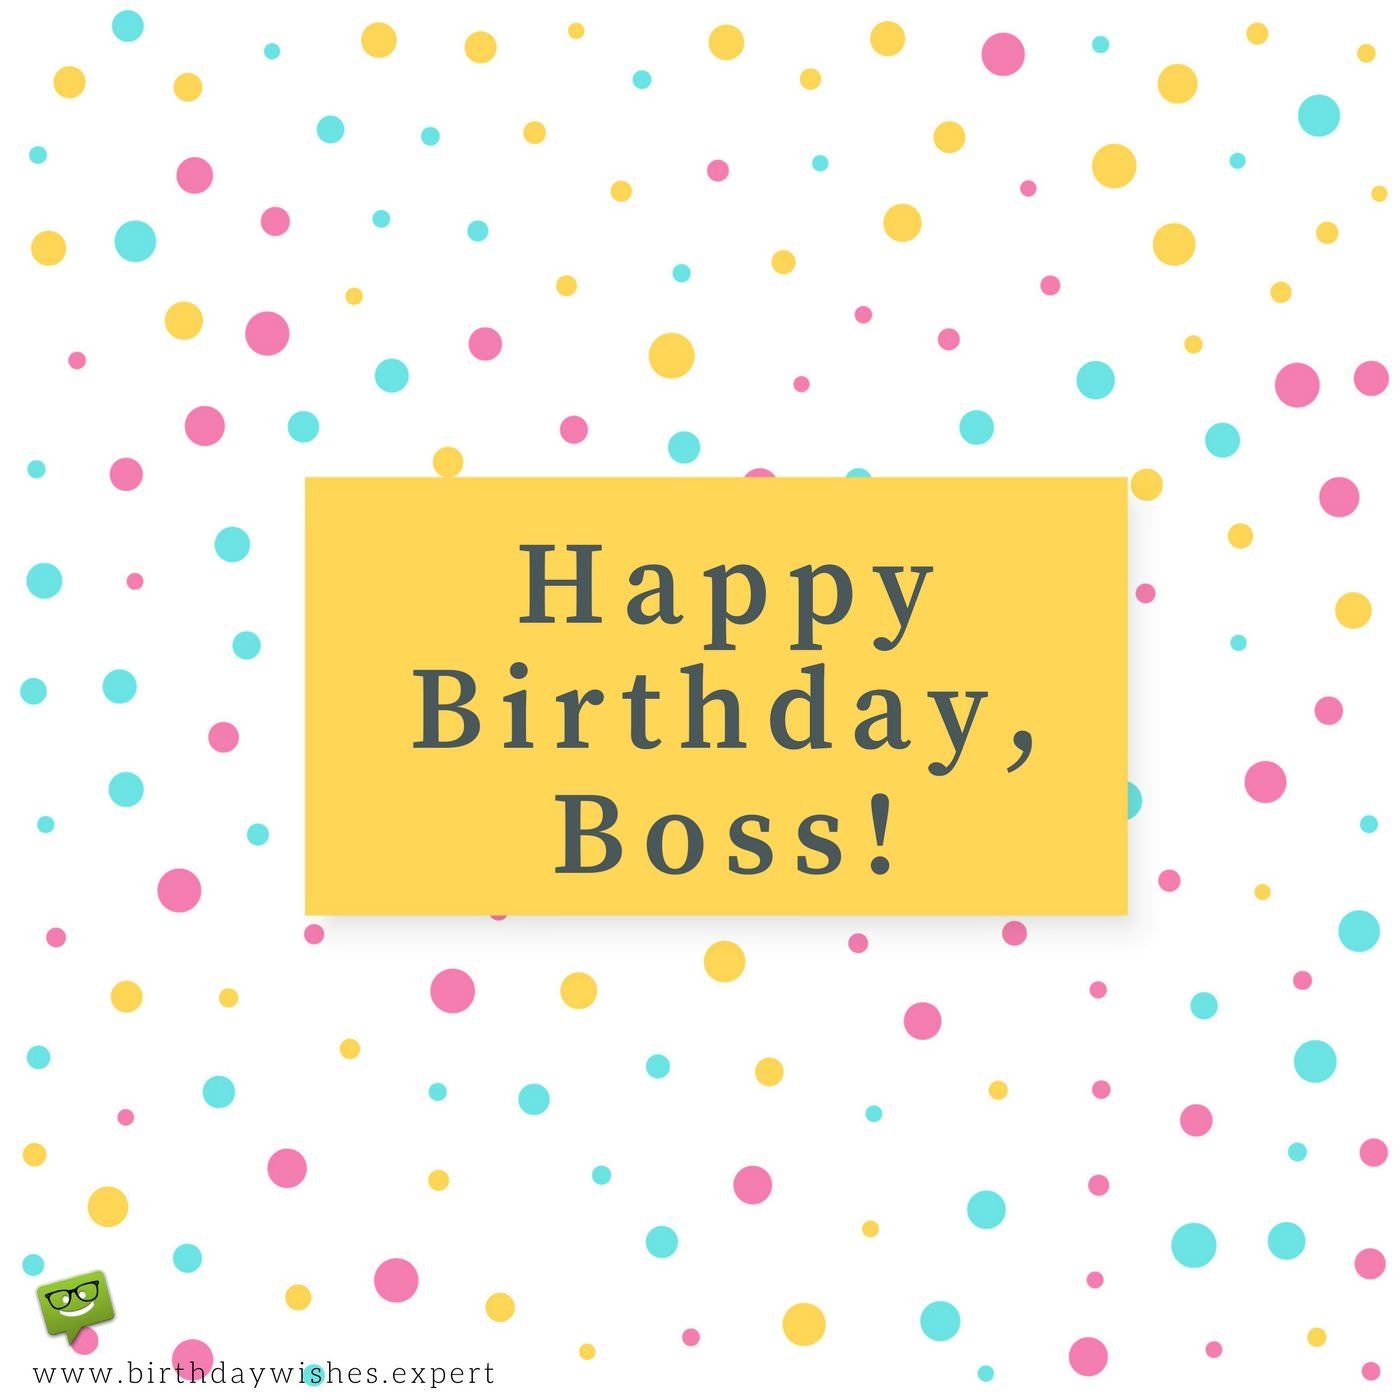 Professionally yours happy birthday wishes for my boss happy birthday boss m4hsunfo